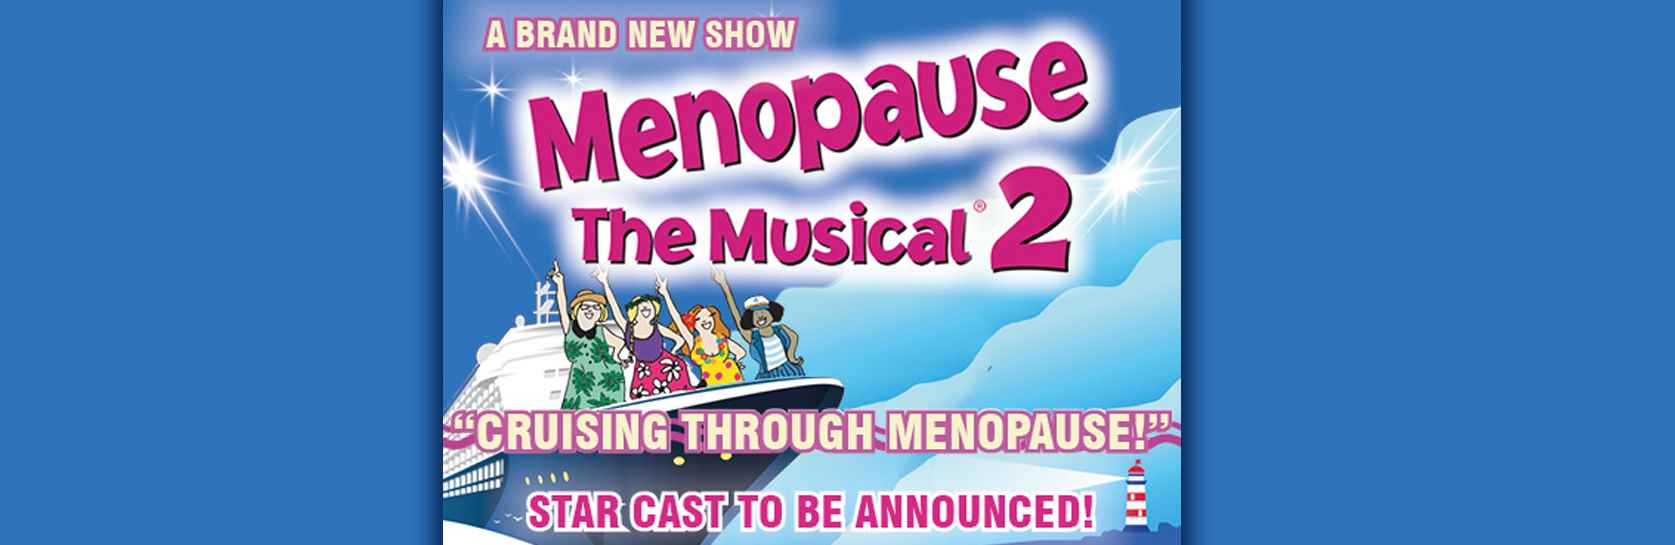 Menopause the Musical: Cruising Through Menopause